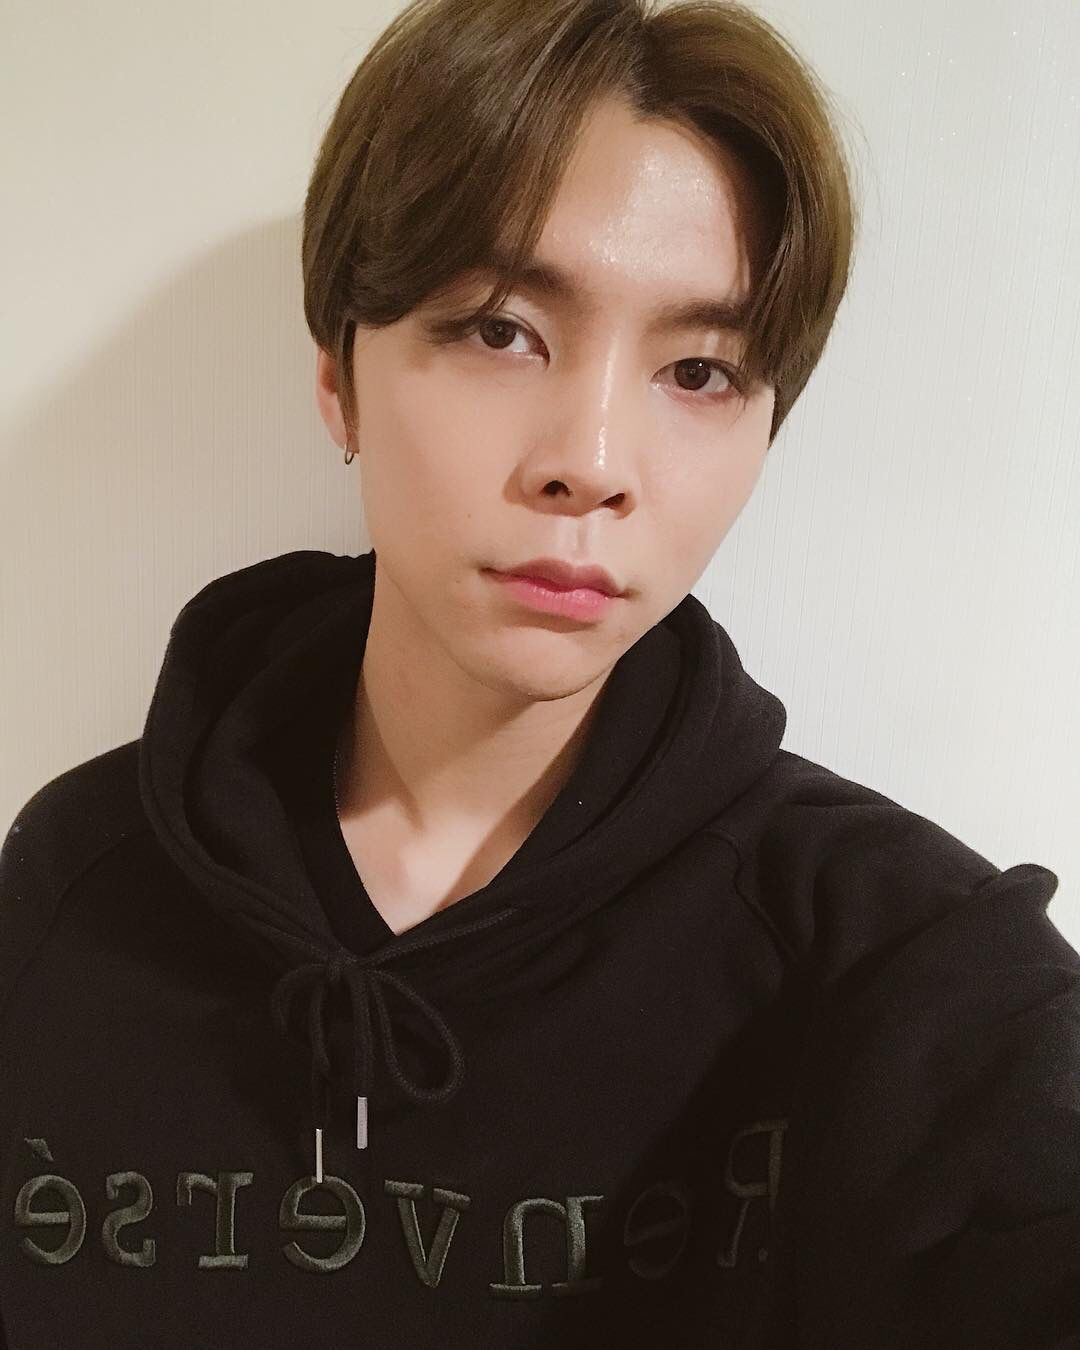 OFFICIAL] 181126 nctnightnight's instagram update with #johnny ...